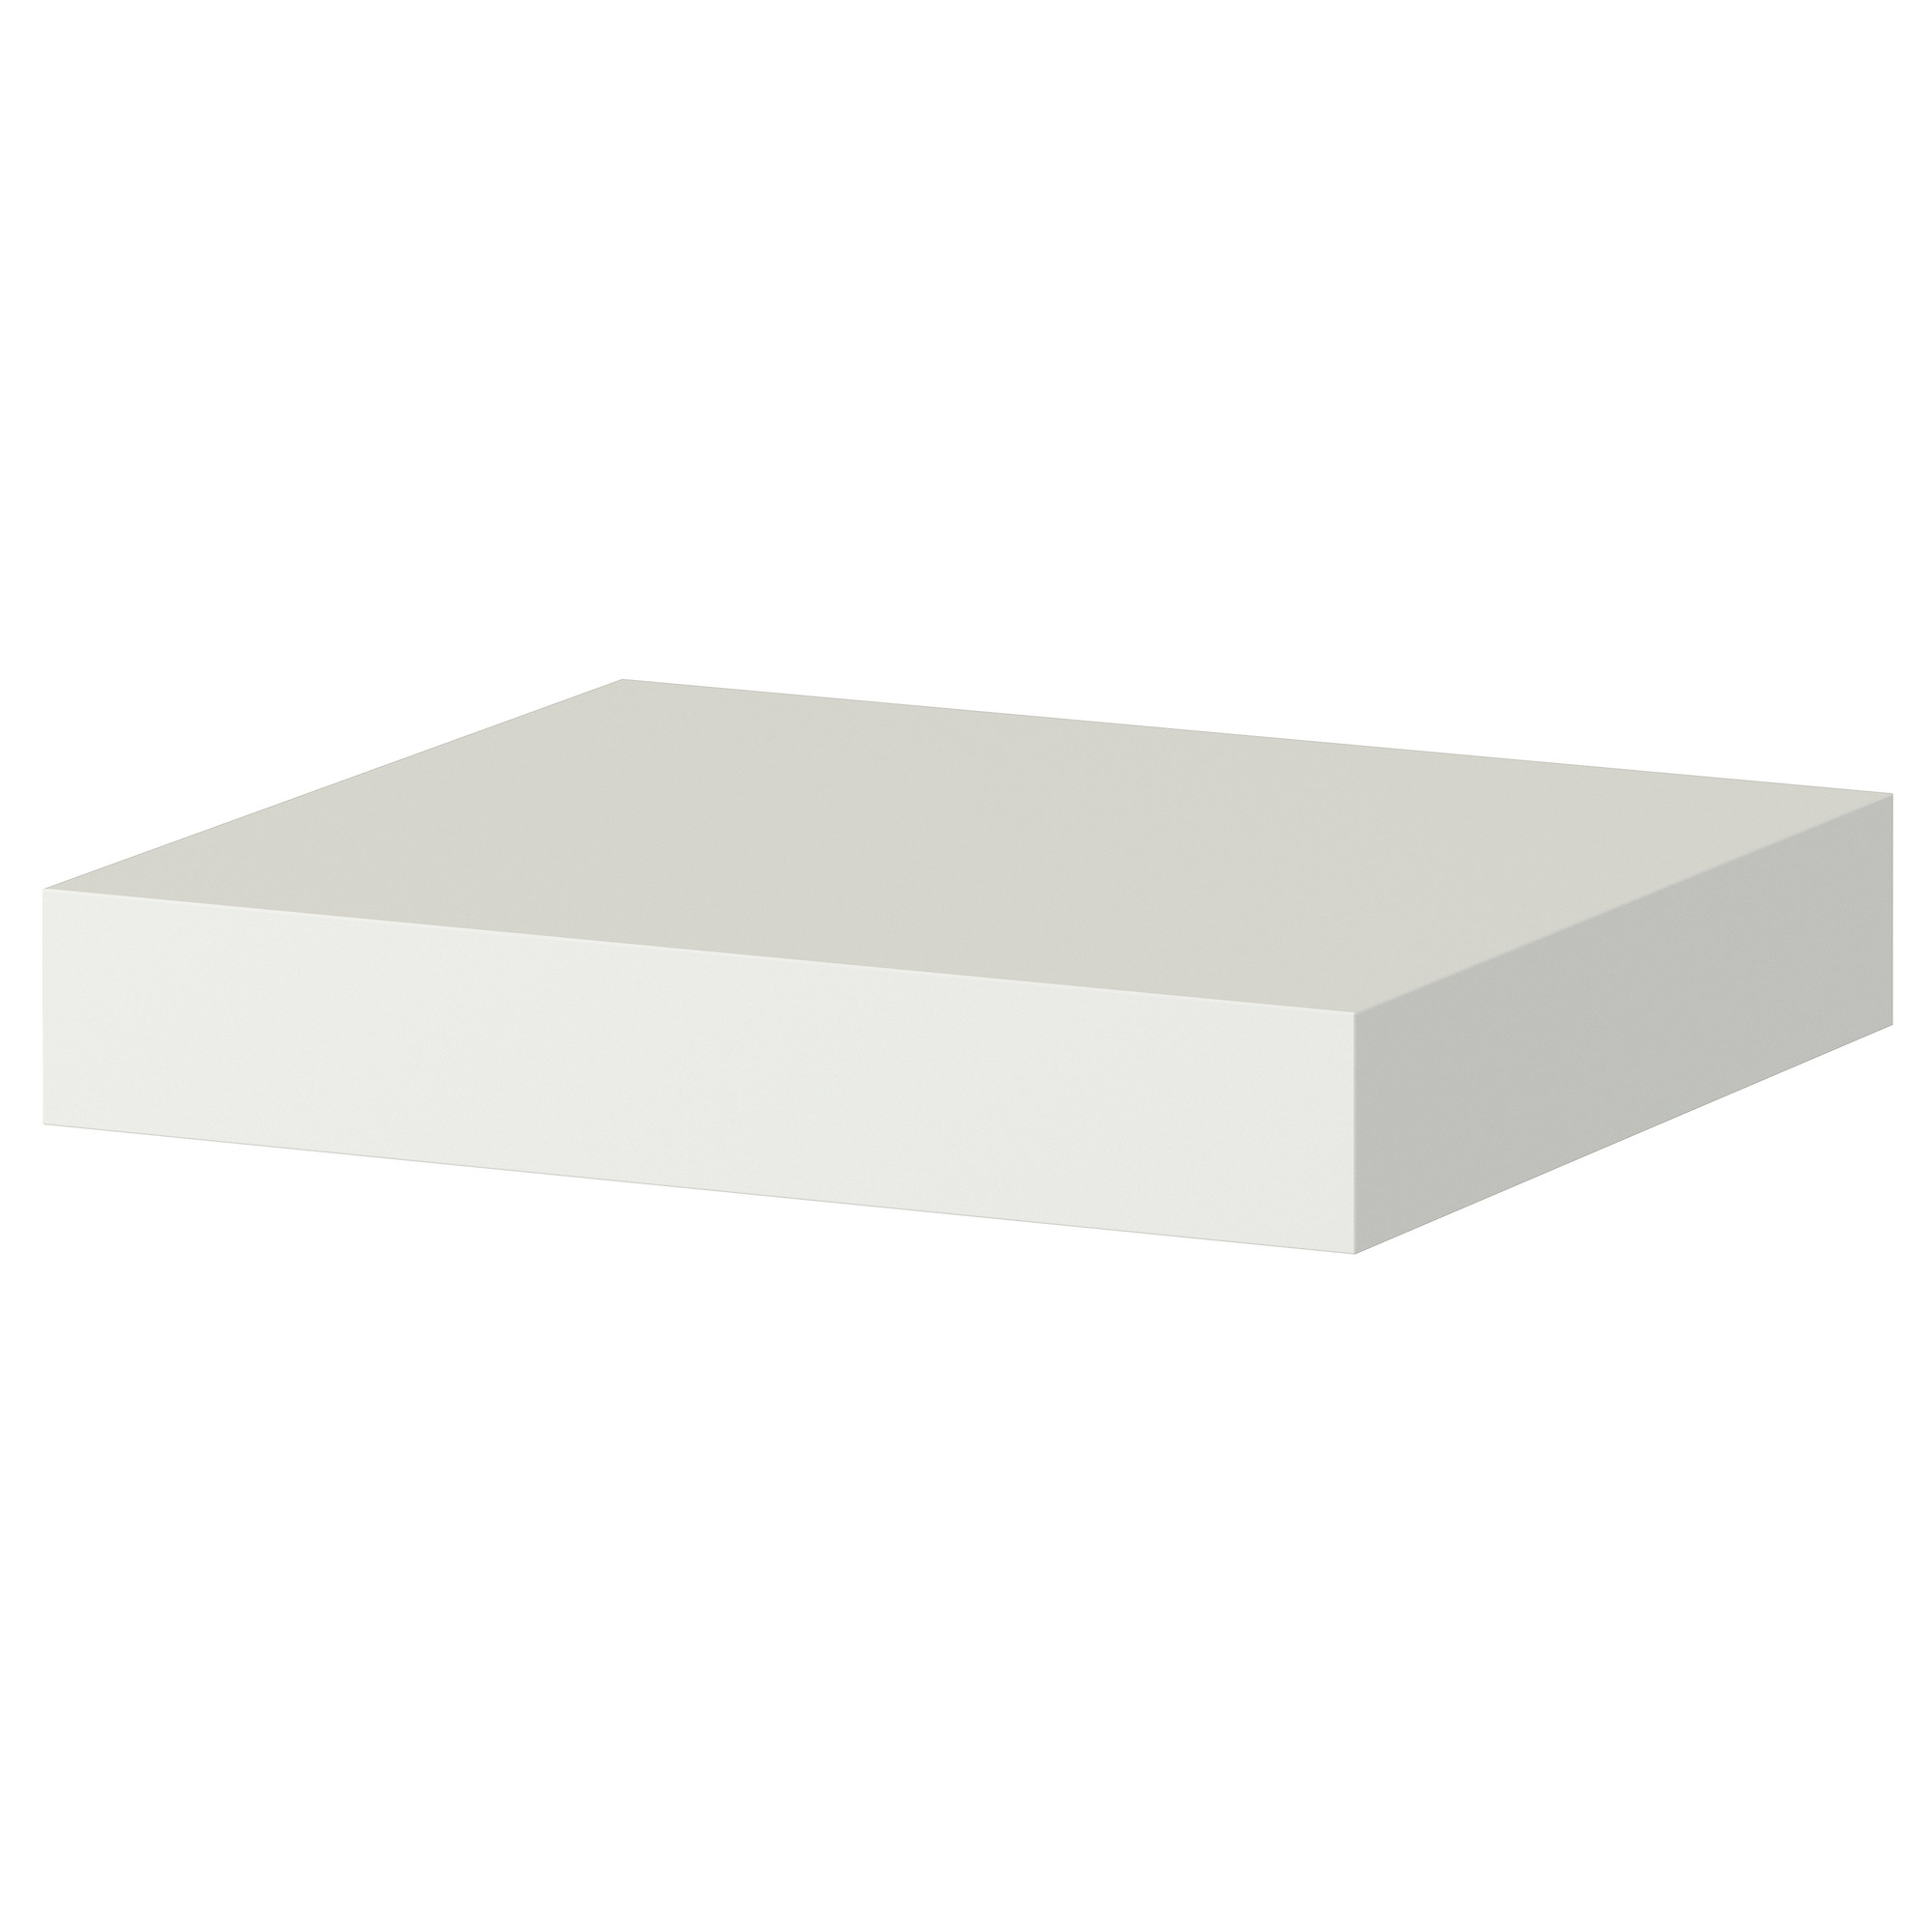 white shelf lack wall shelf - white - ikea TGPBRMM